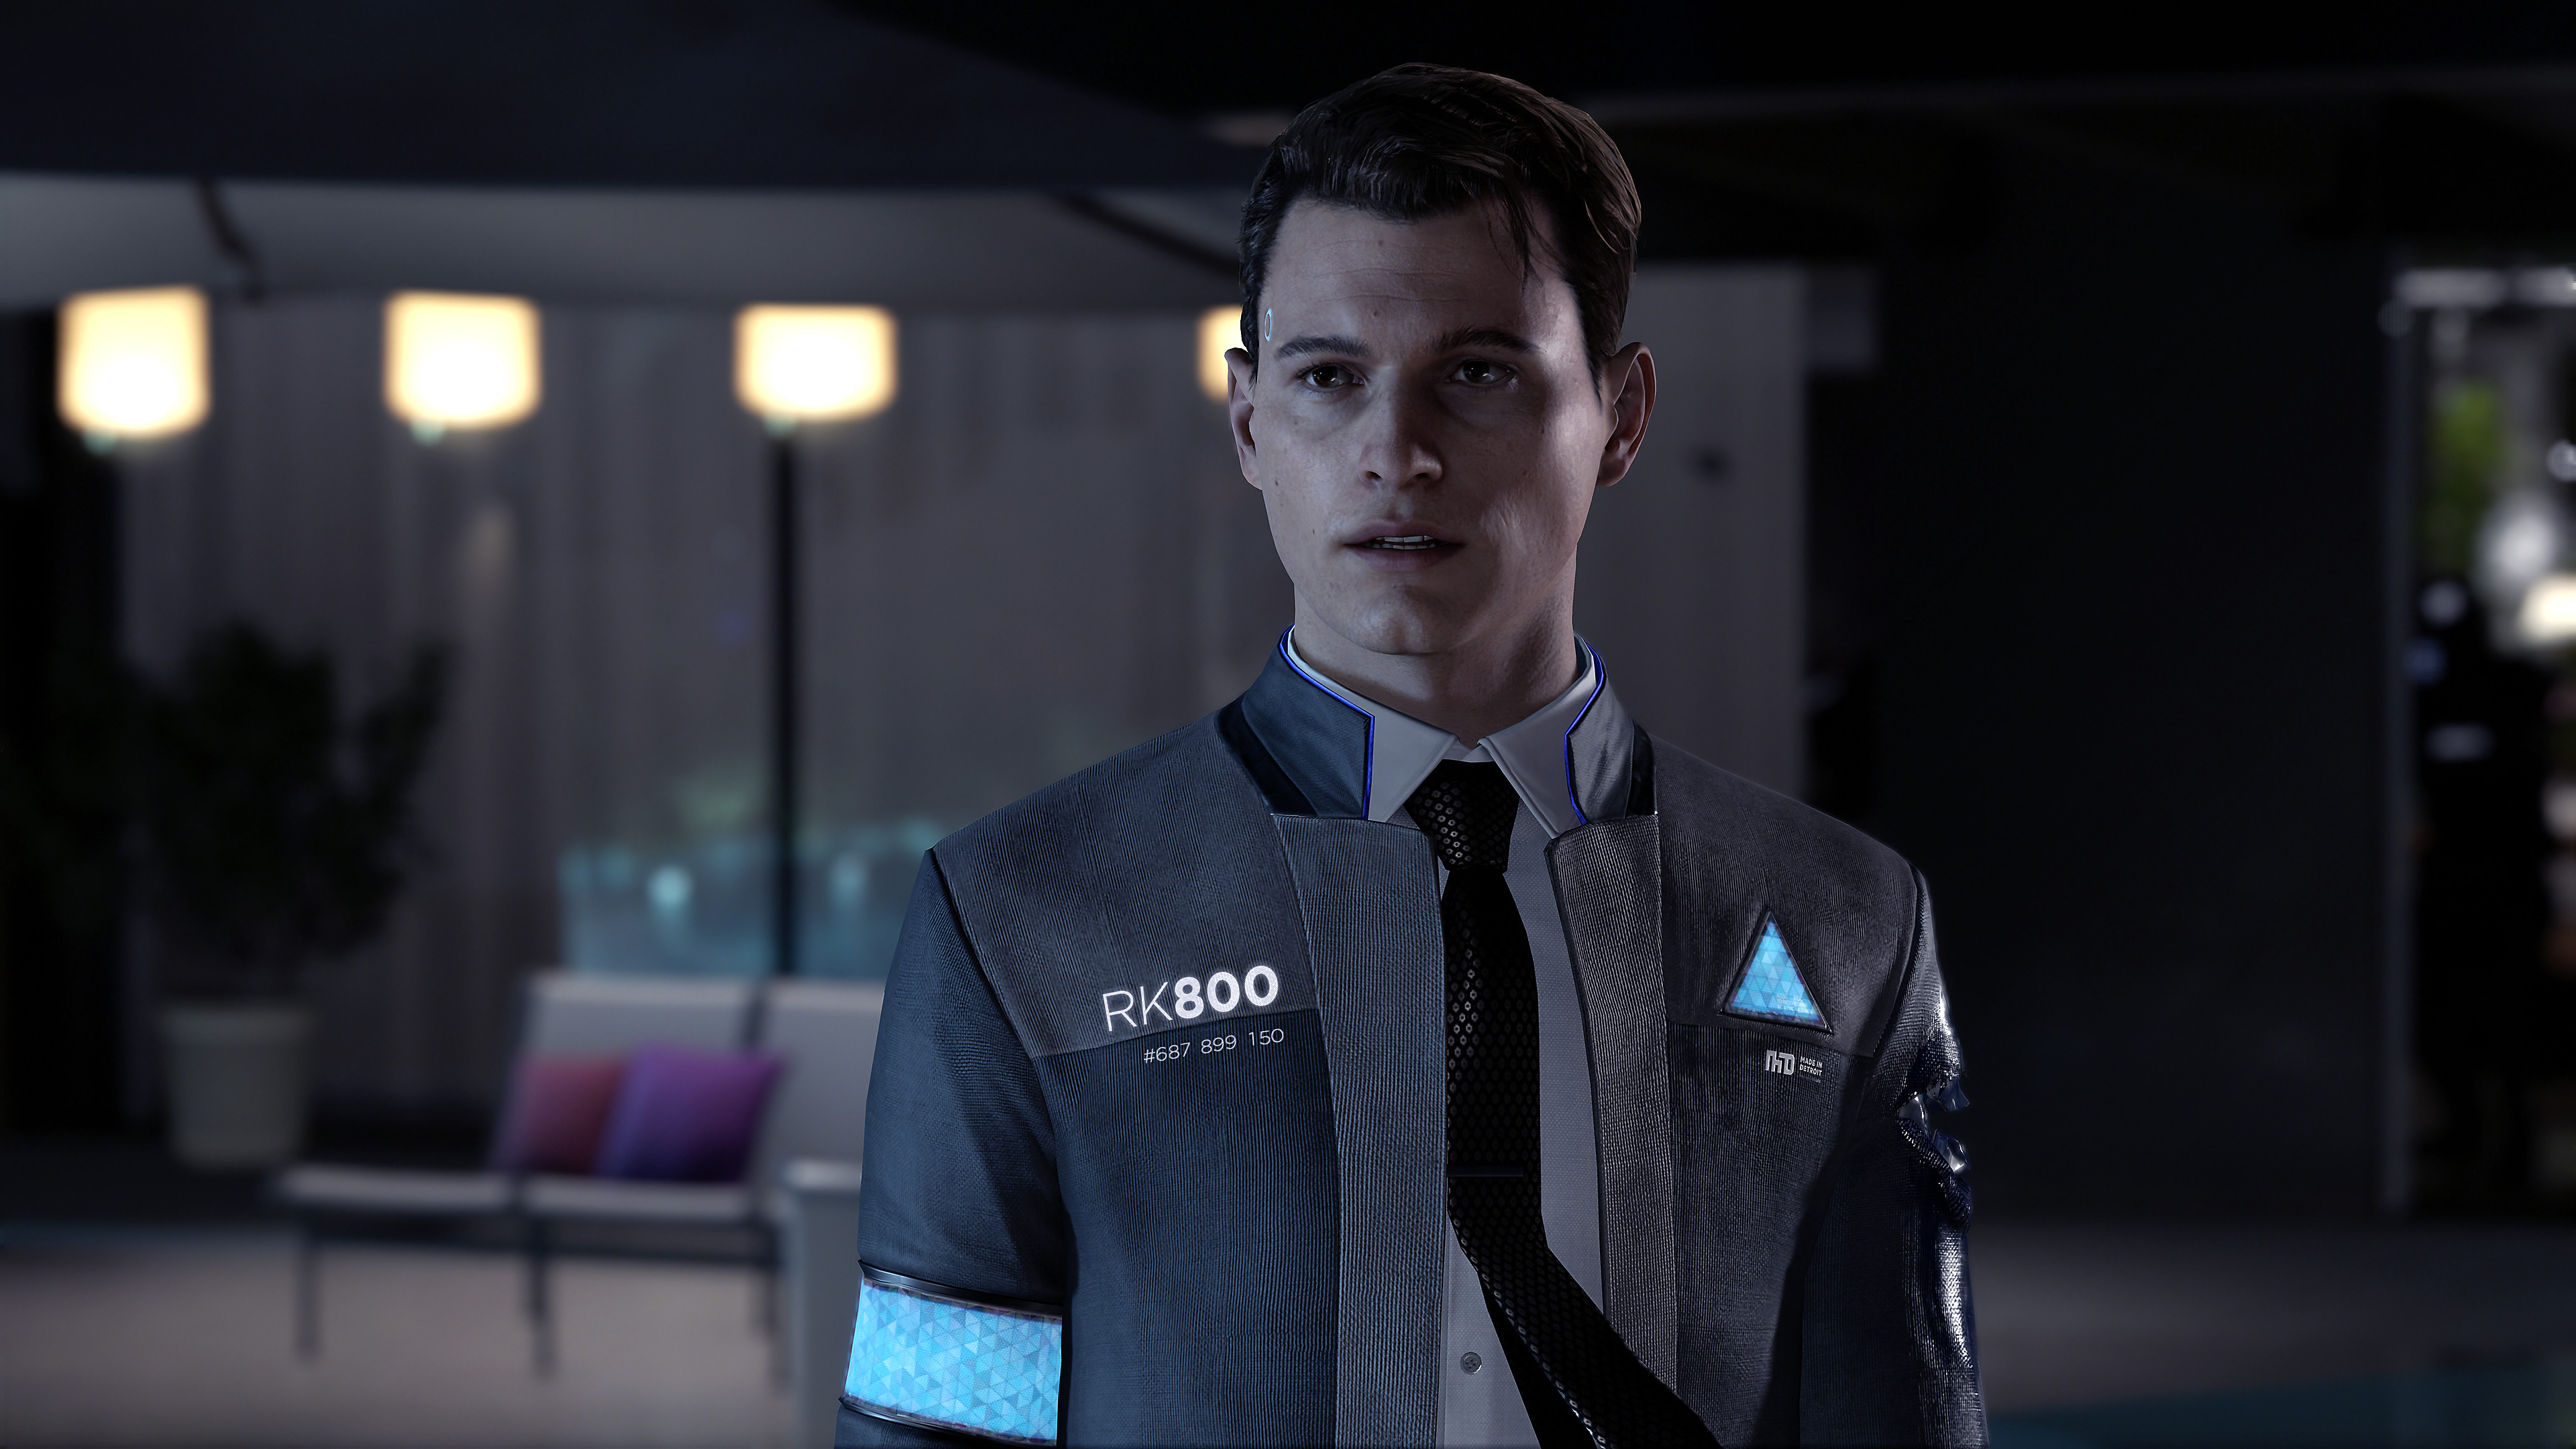 Detroit developer Quantic Dream locks up timed exclusive deal with Epic to bring their lineup to PC screenshot